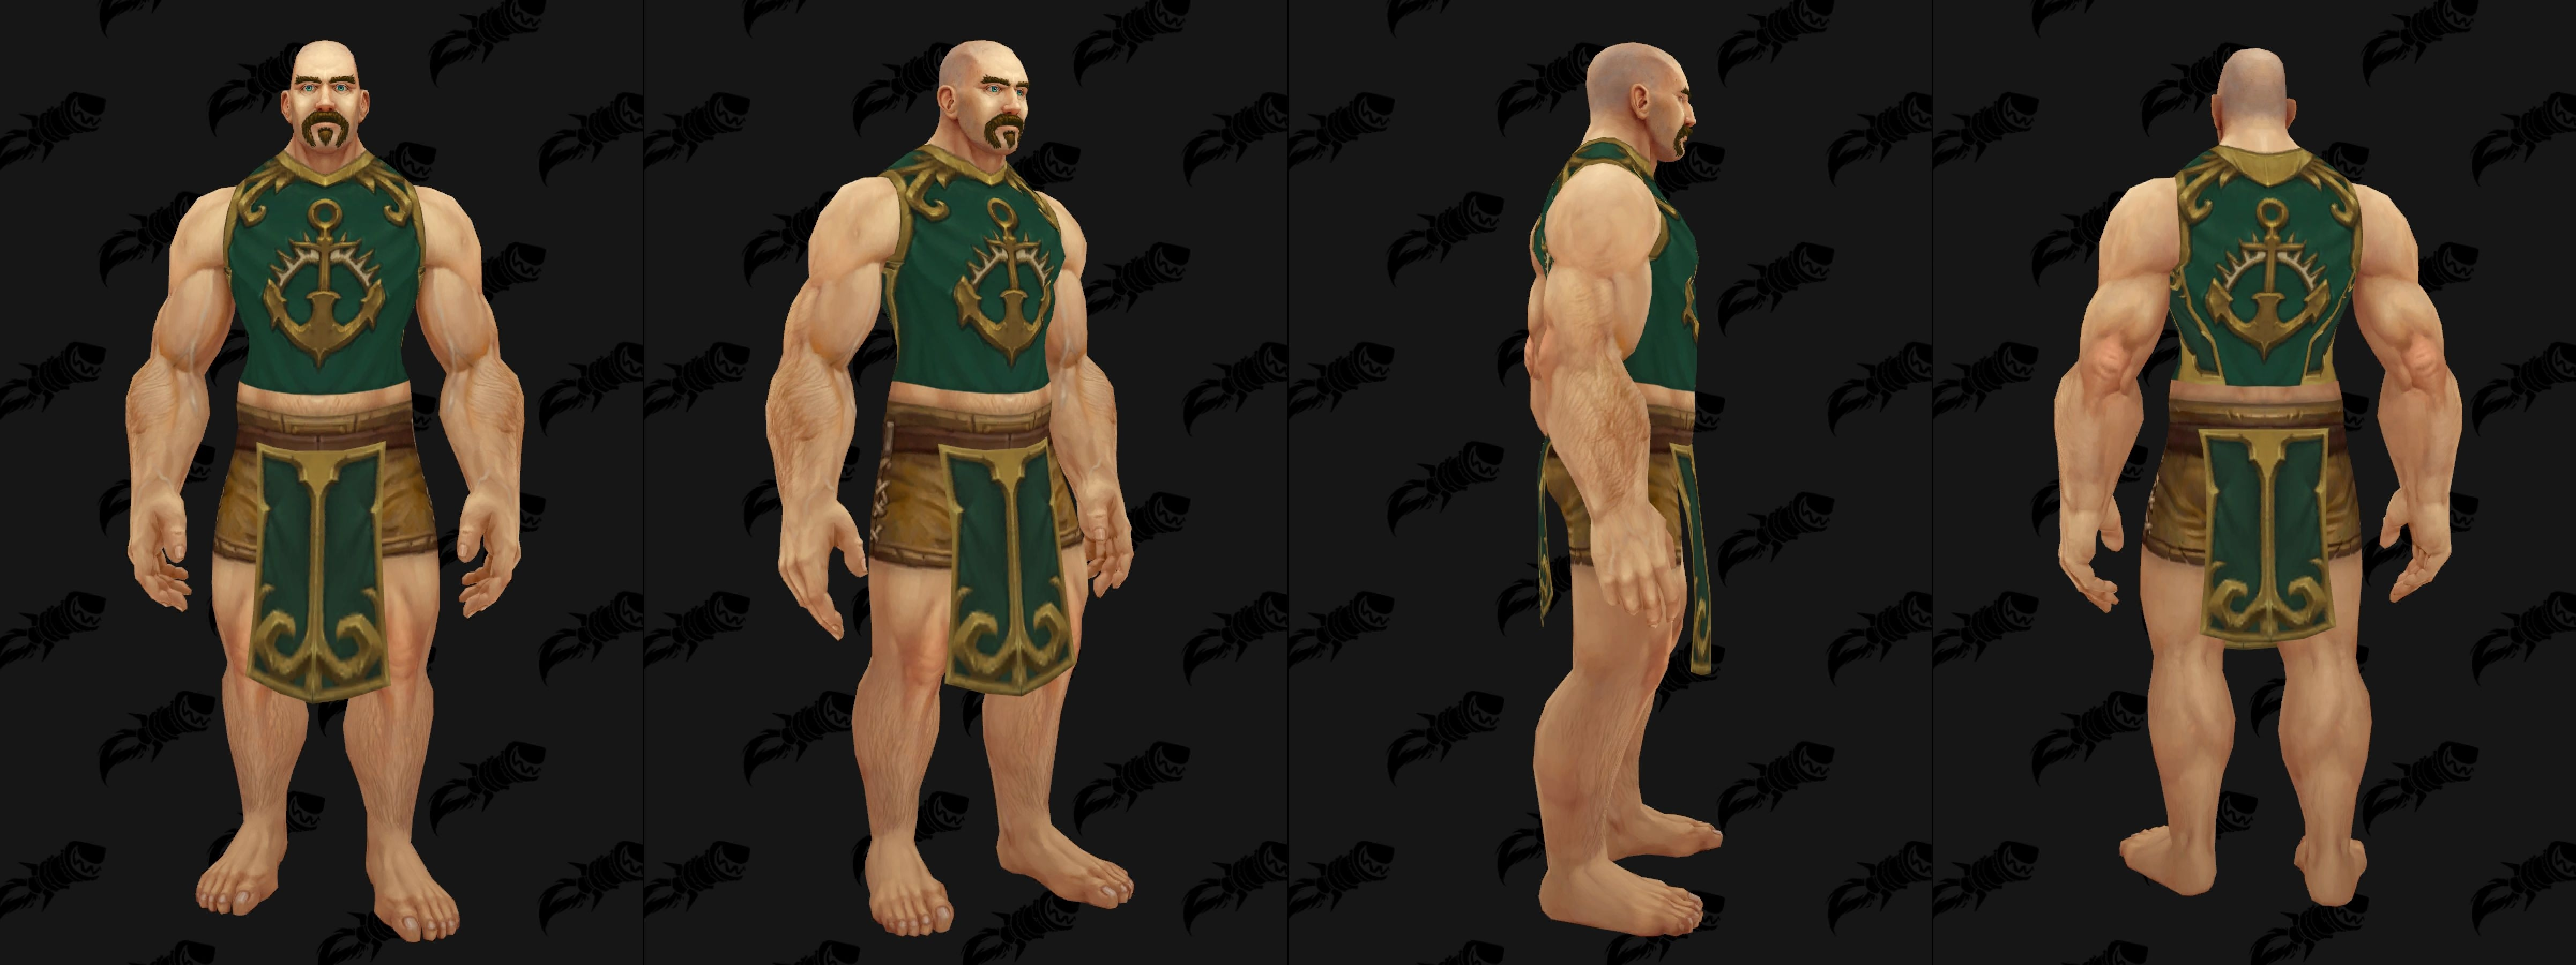 Tabard de Honorbound dans Battle for Azeroth